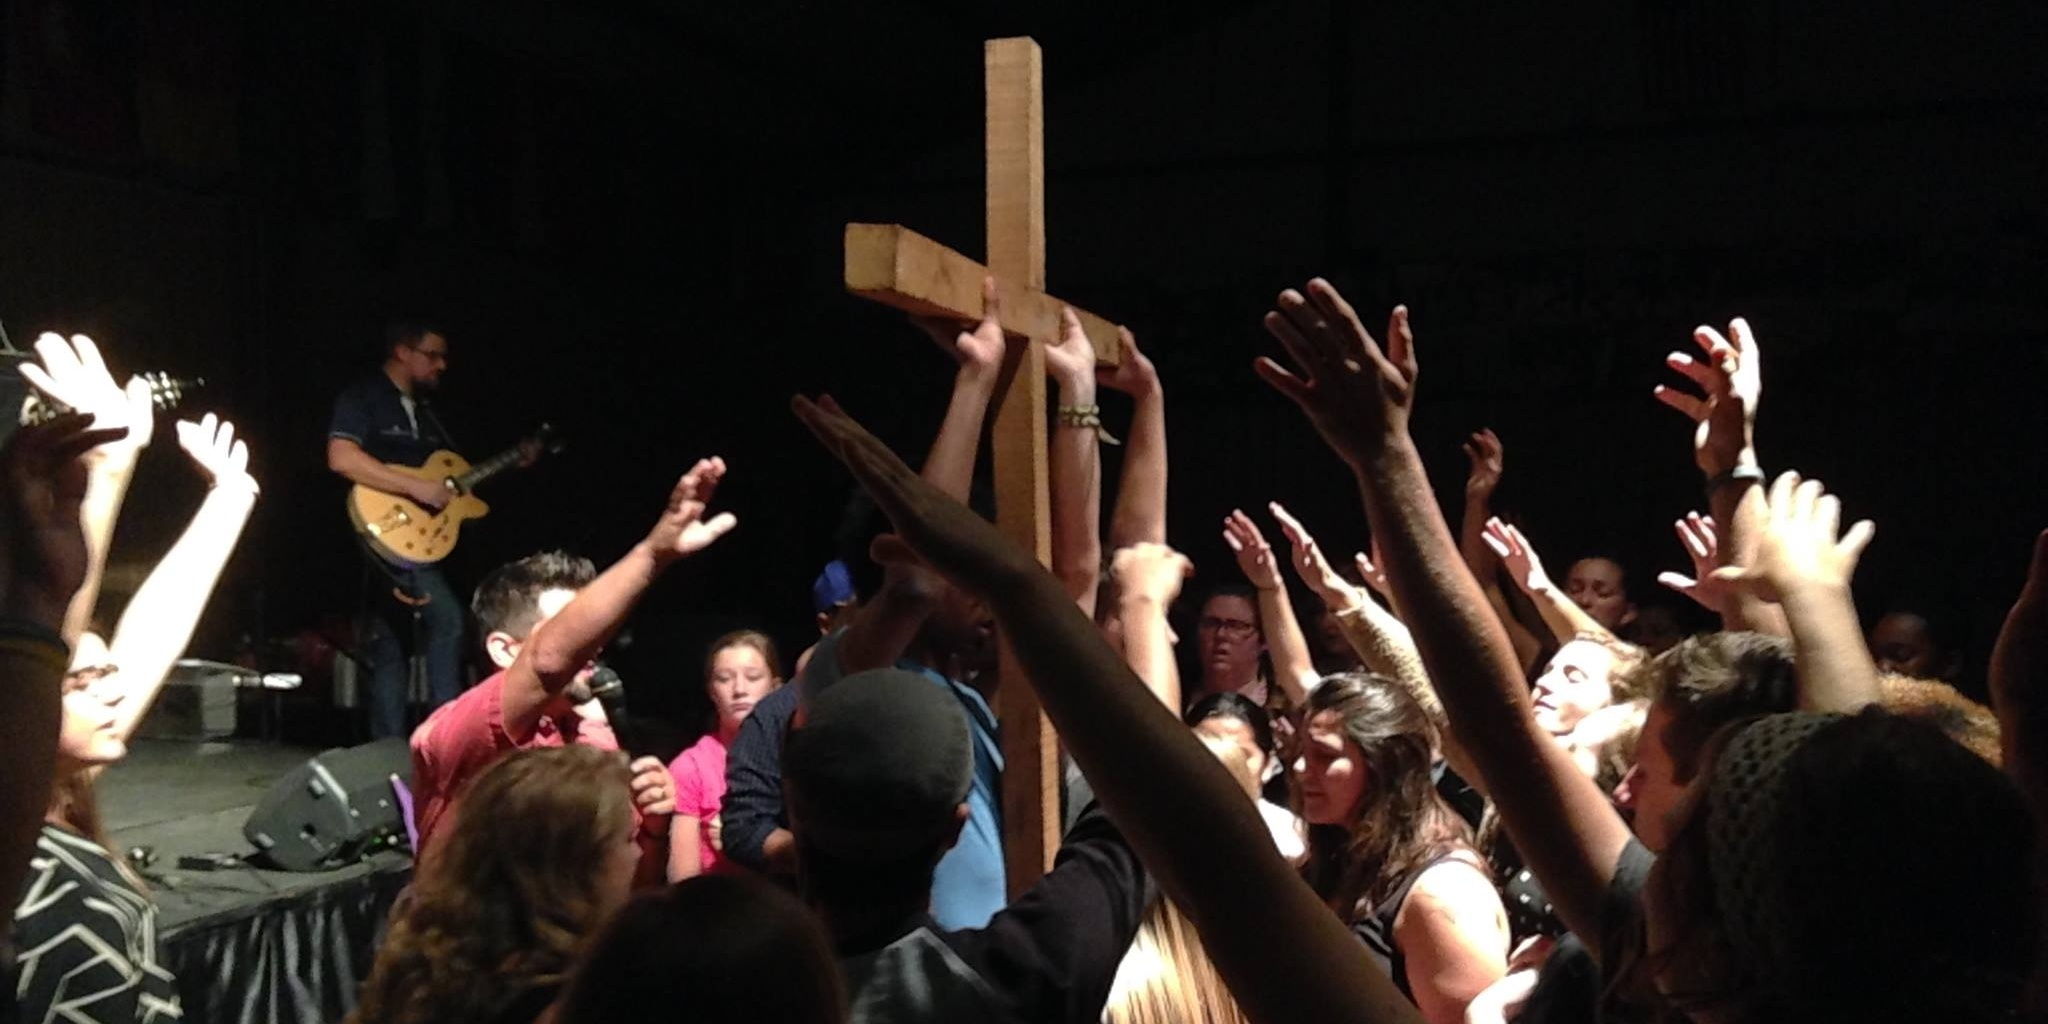 Cross, Hands Lifted Up-100127-edited.jpg